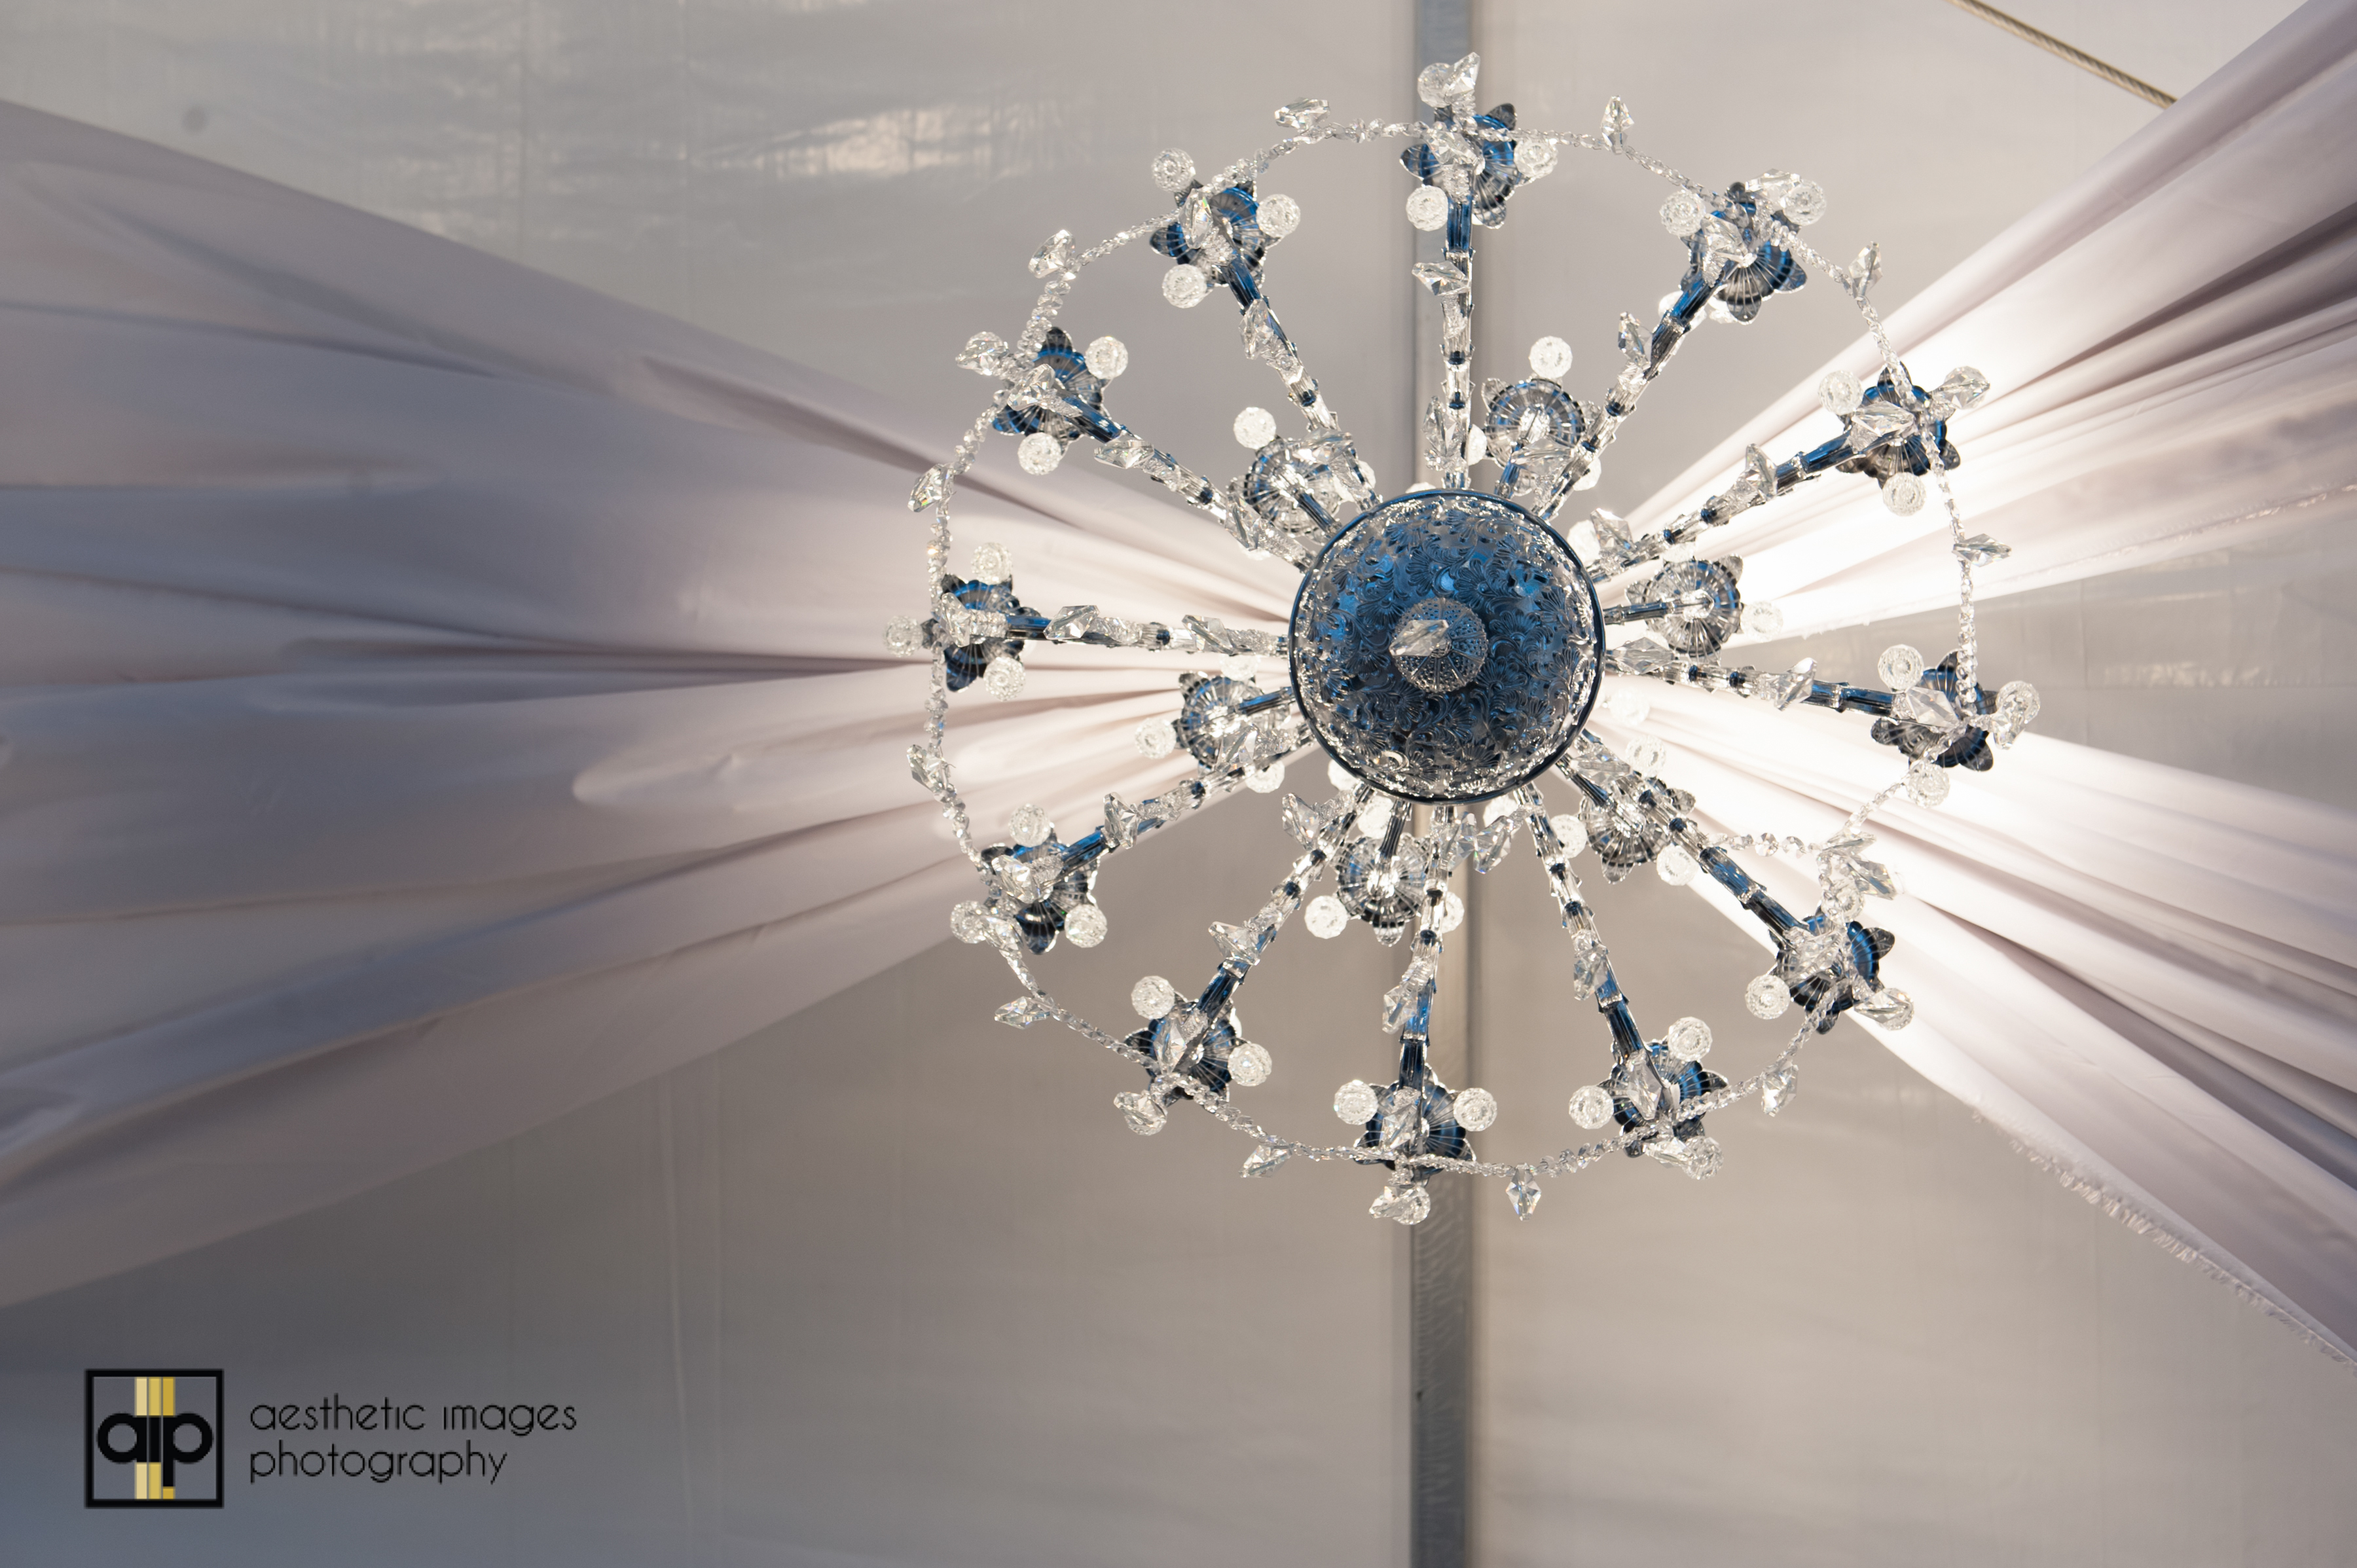 GBO Client Event Tent Chandelier